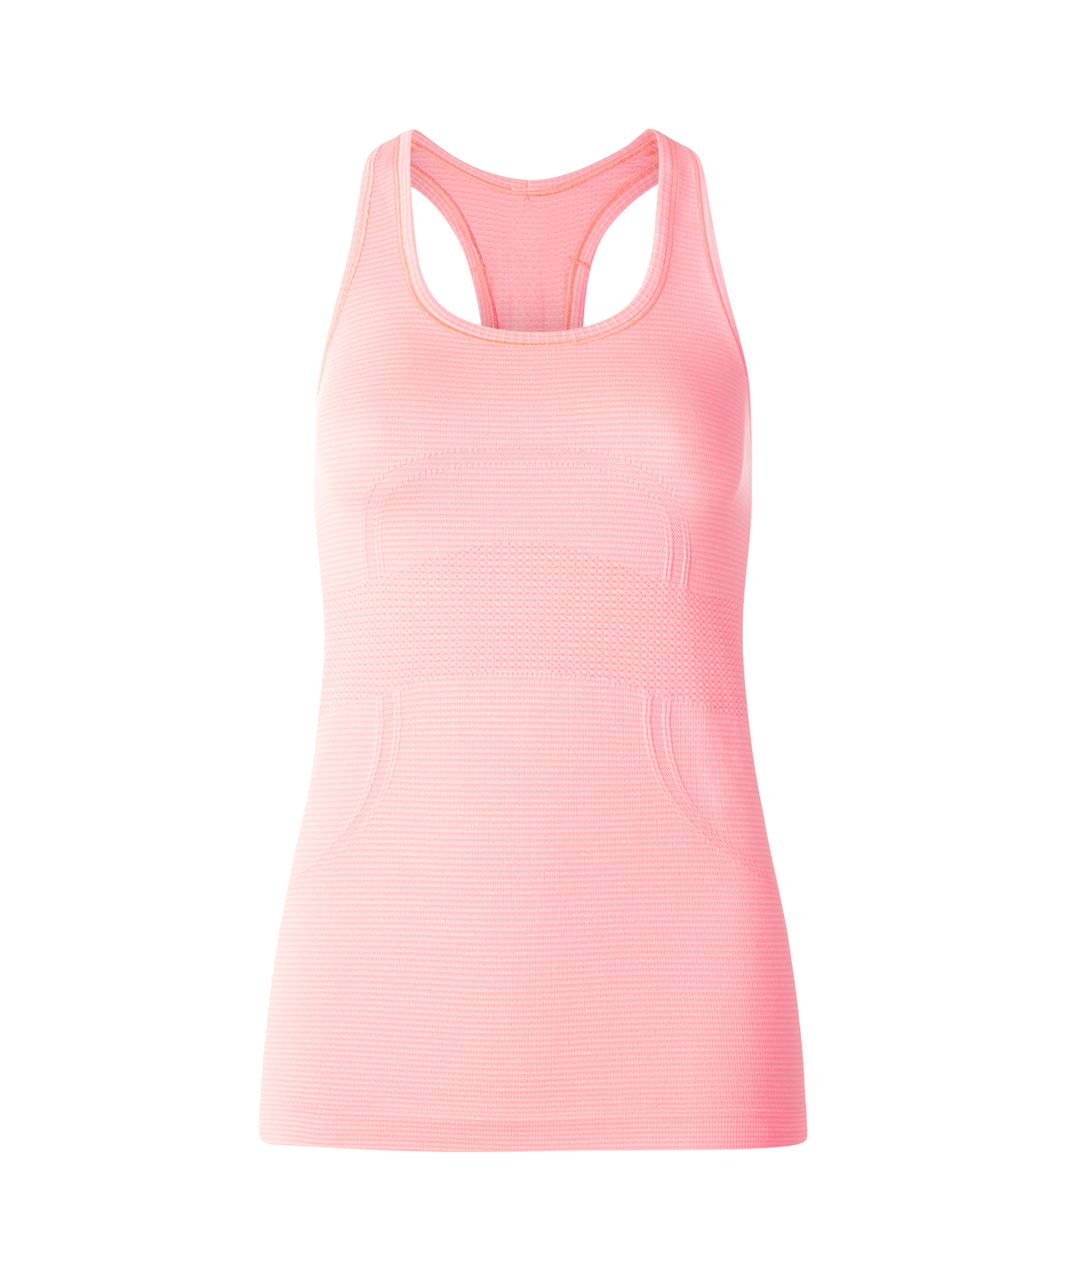 Lululemon Swiftly Tech Racerback - Heathered Bleached Coral